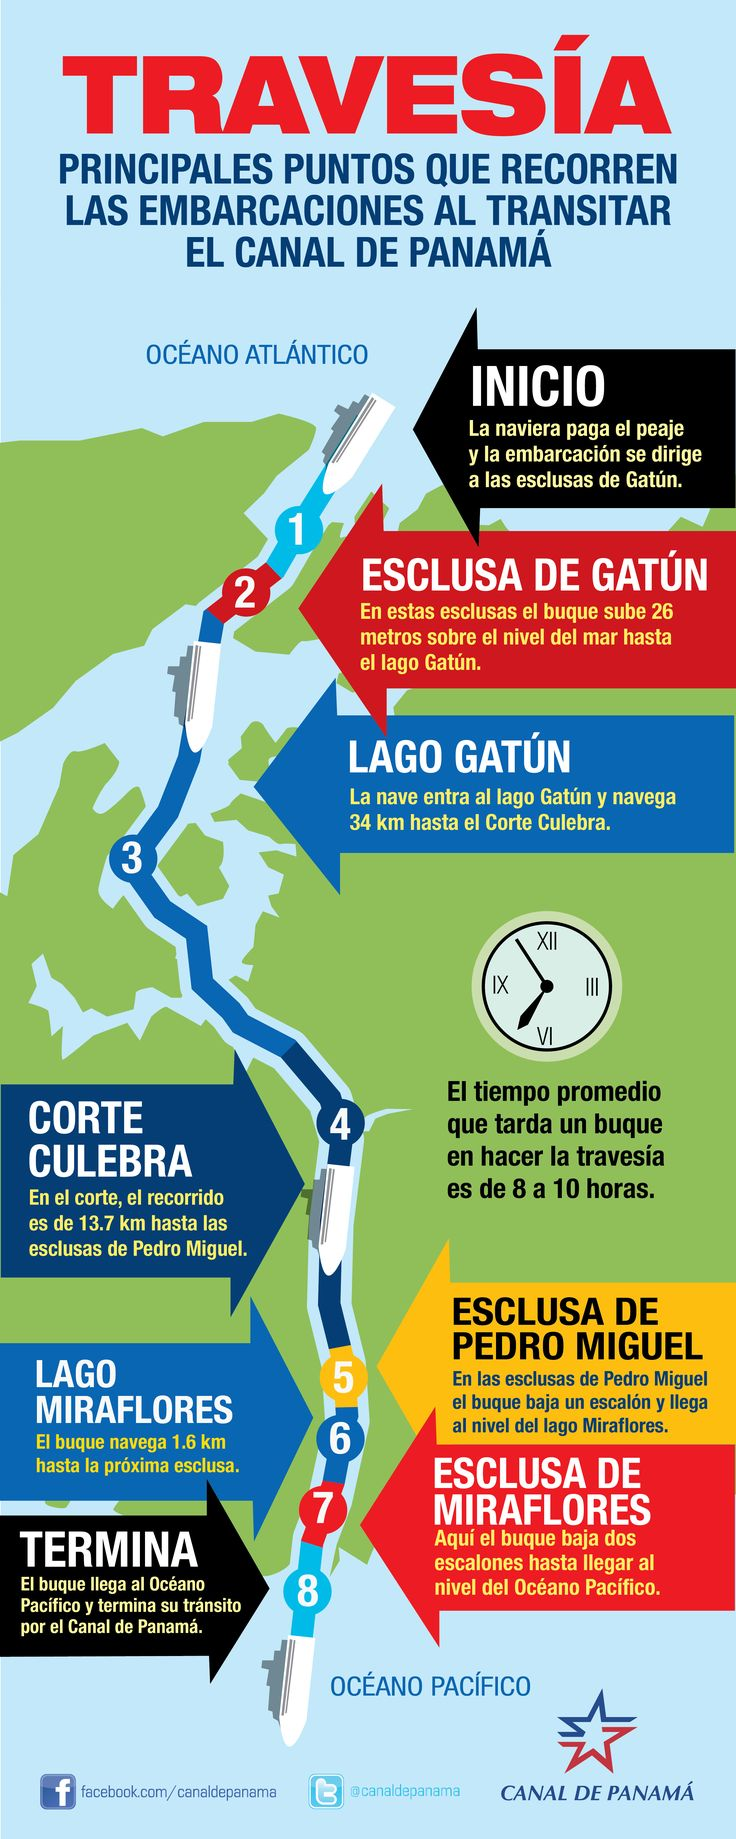 Panama Canal Transit:  Gatun Locks, Gatun Lake, the Culebra Cut, Pedro Miguel Locks, Miraflores Lake, Miraflores Locks, the port at Flamenco Marina. More info at www.ecocircuitos.com